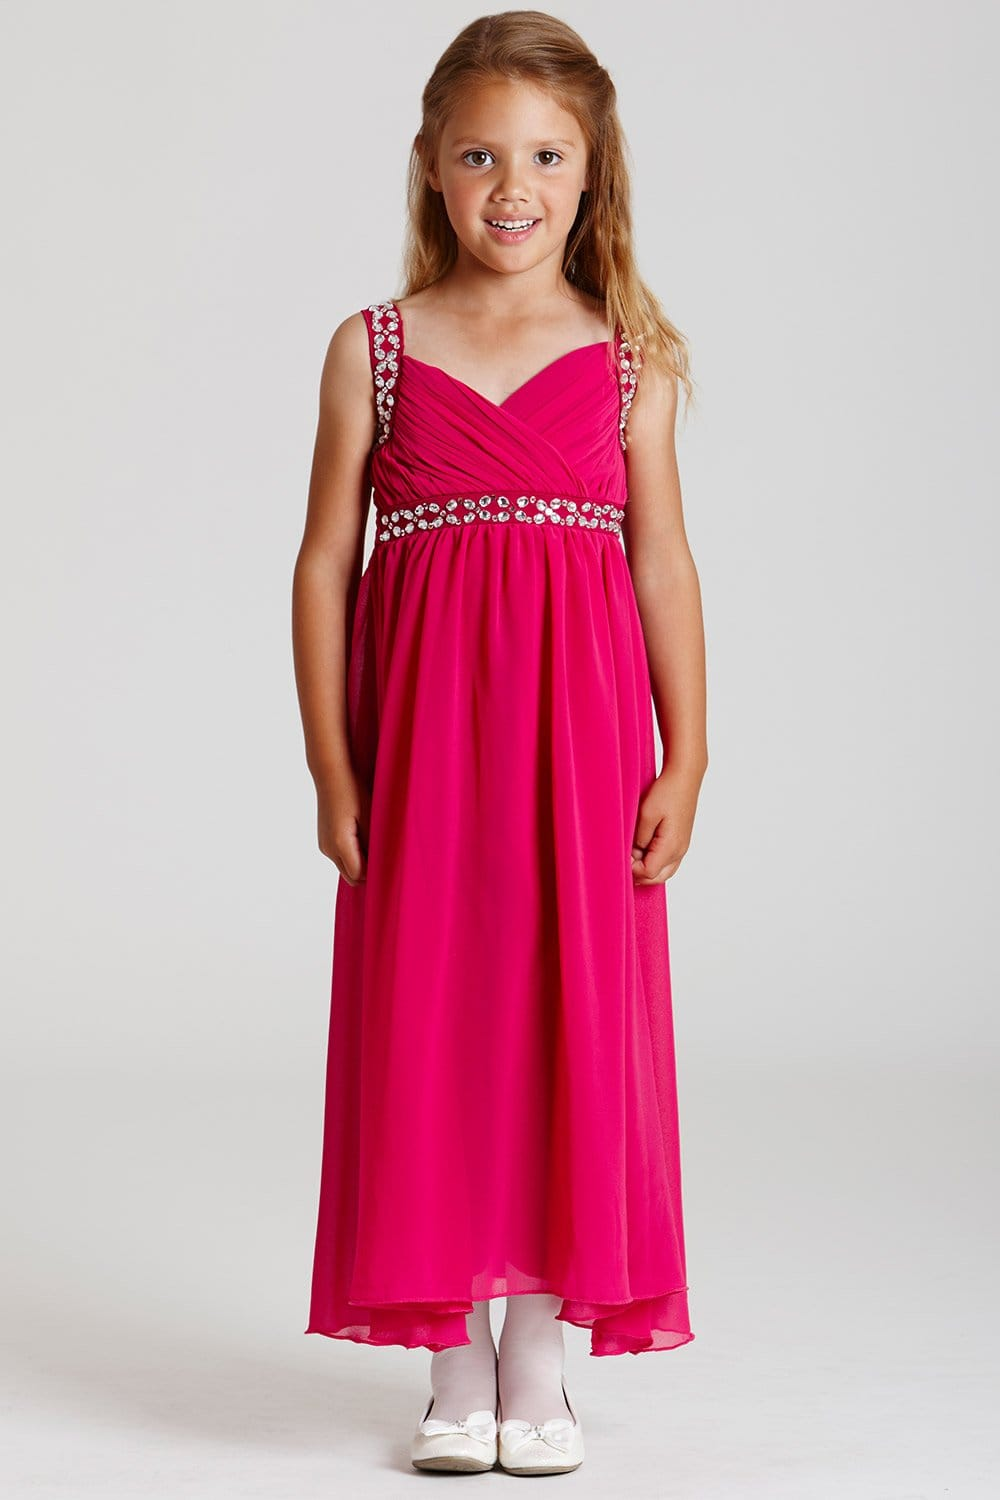 Little MisDress Pink Chiffon Maxi Dress - Little MisDress from ...